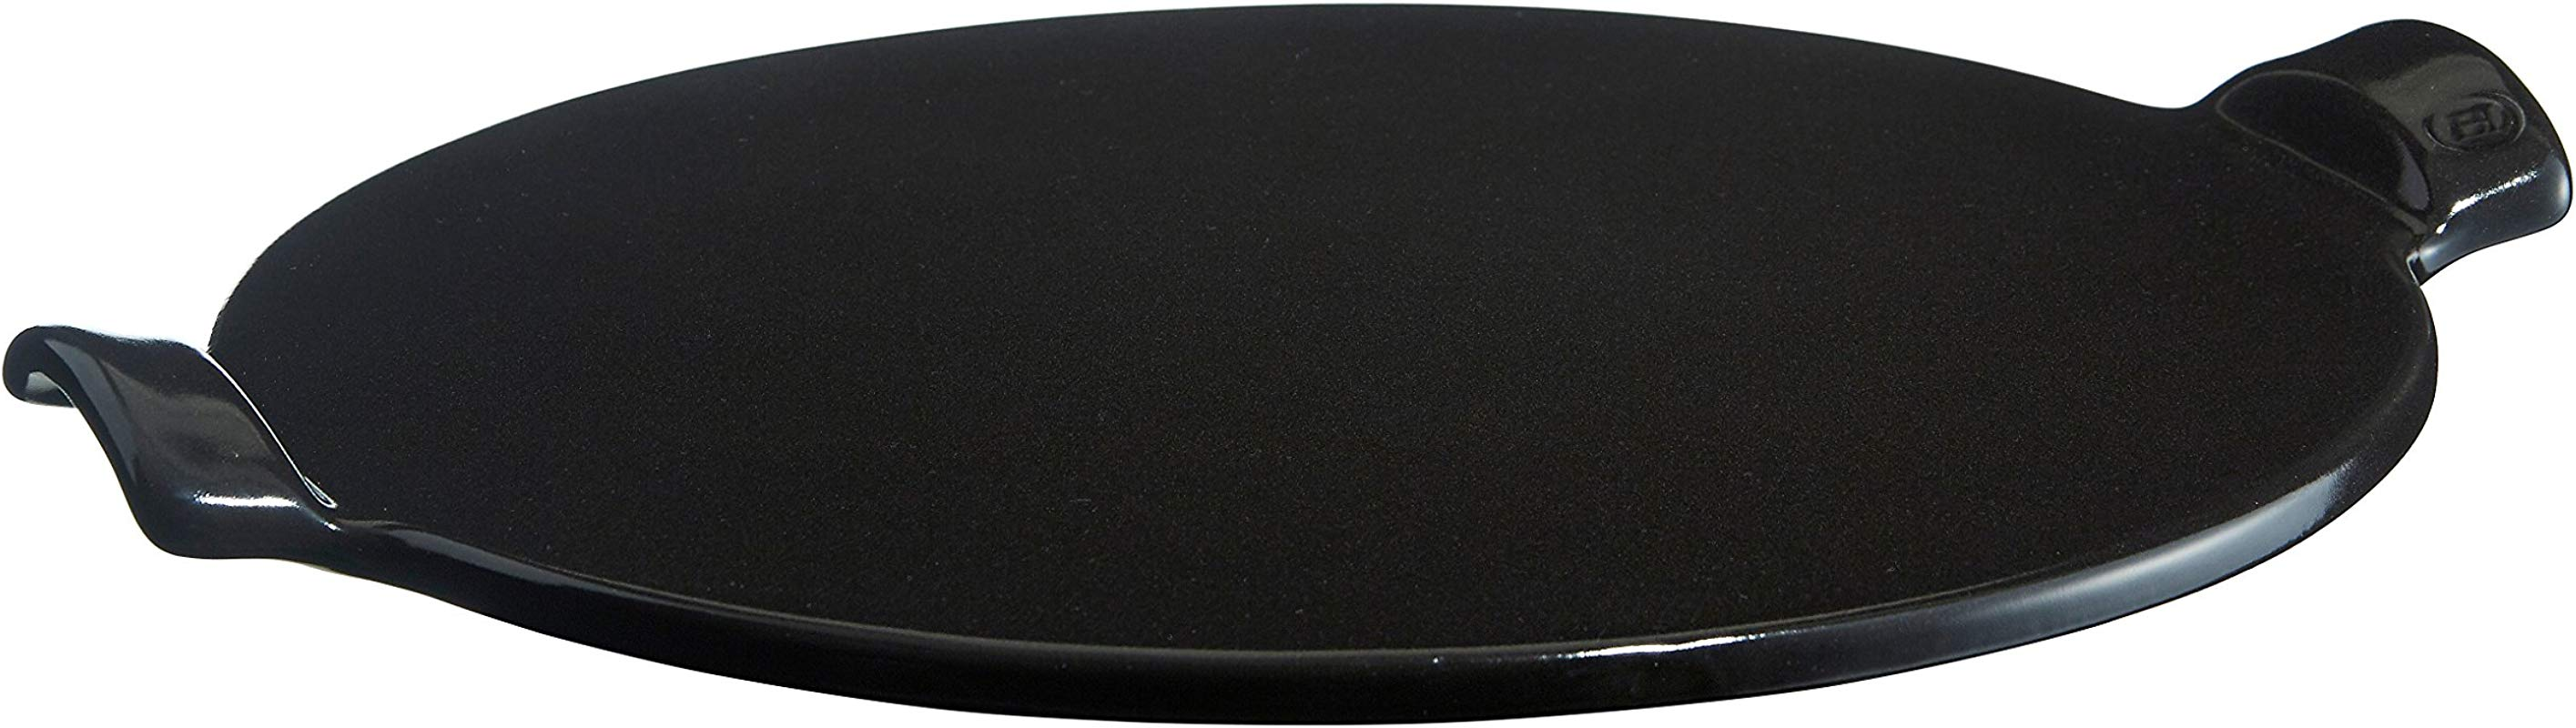 Emile Henry Made In France 14 5 Inch Flame Top Pizza Stone Charcoal